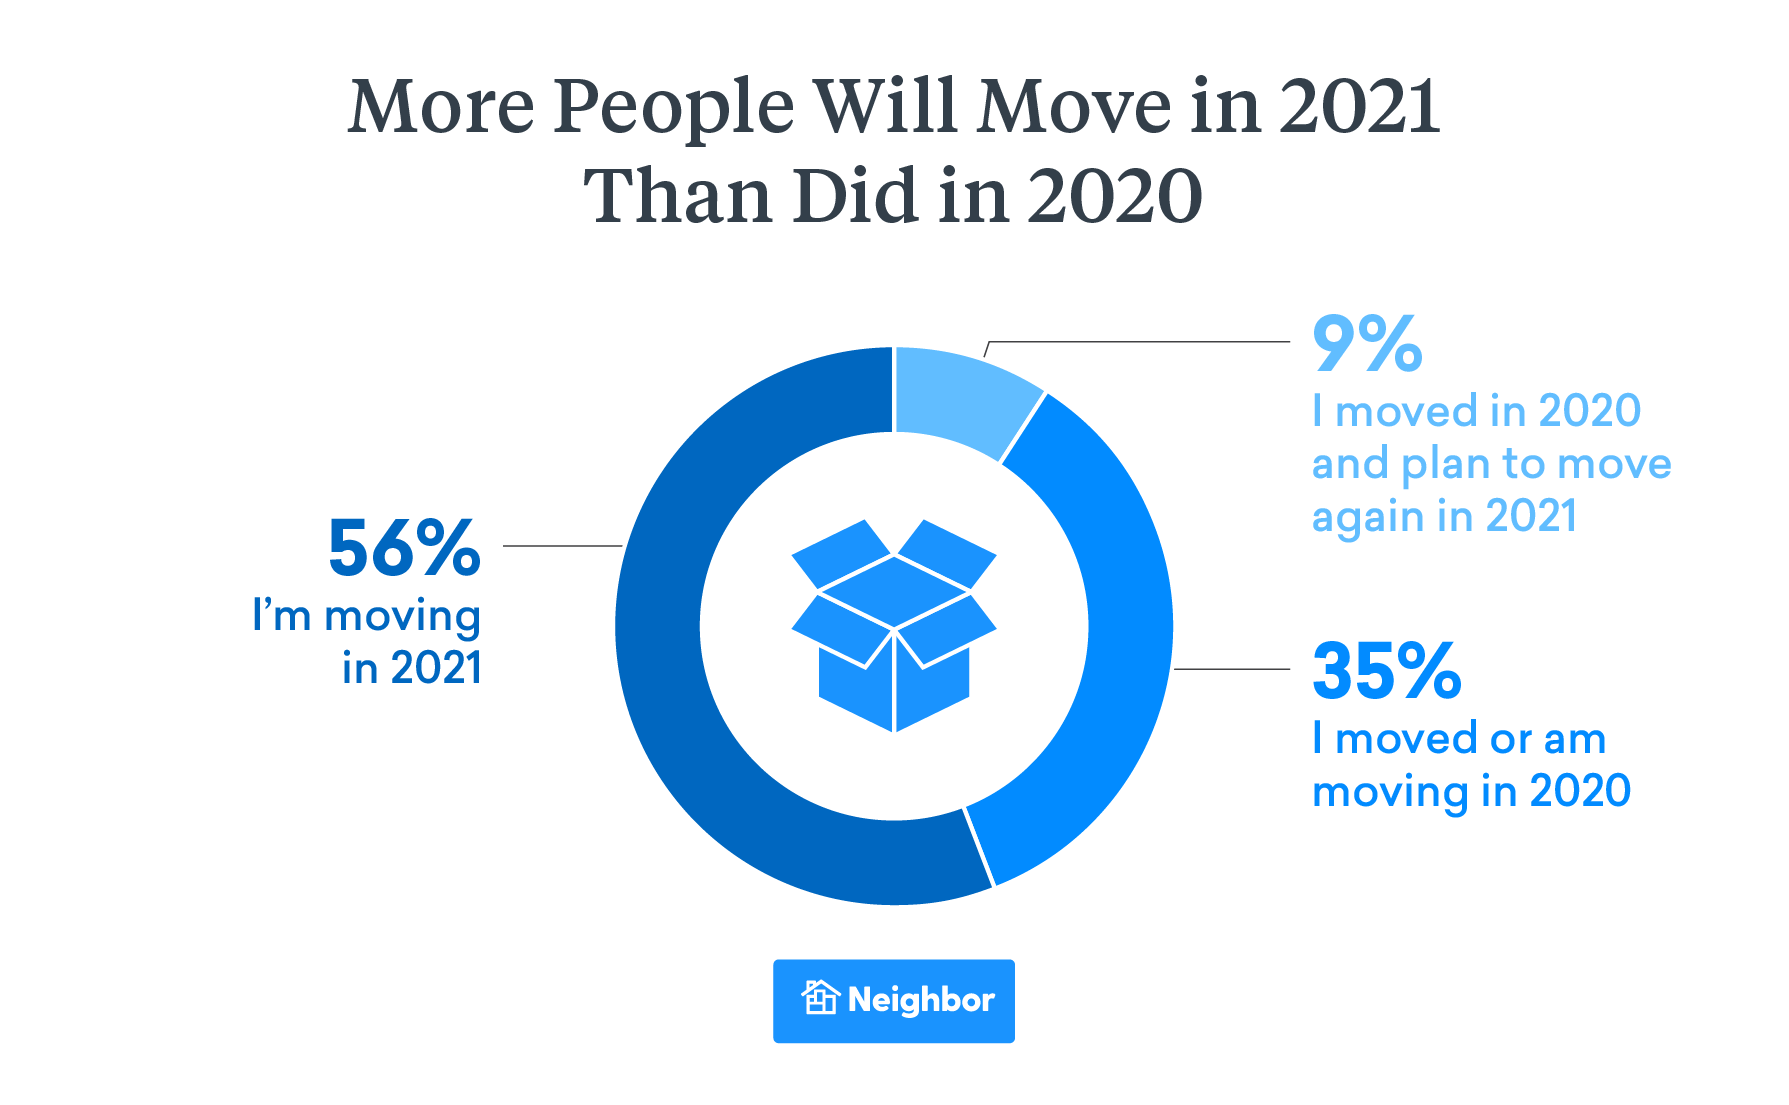 Moving Is up Dramatically and Even More Americans Will Move in 2021 Than 2020